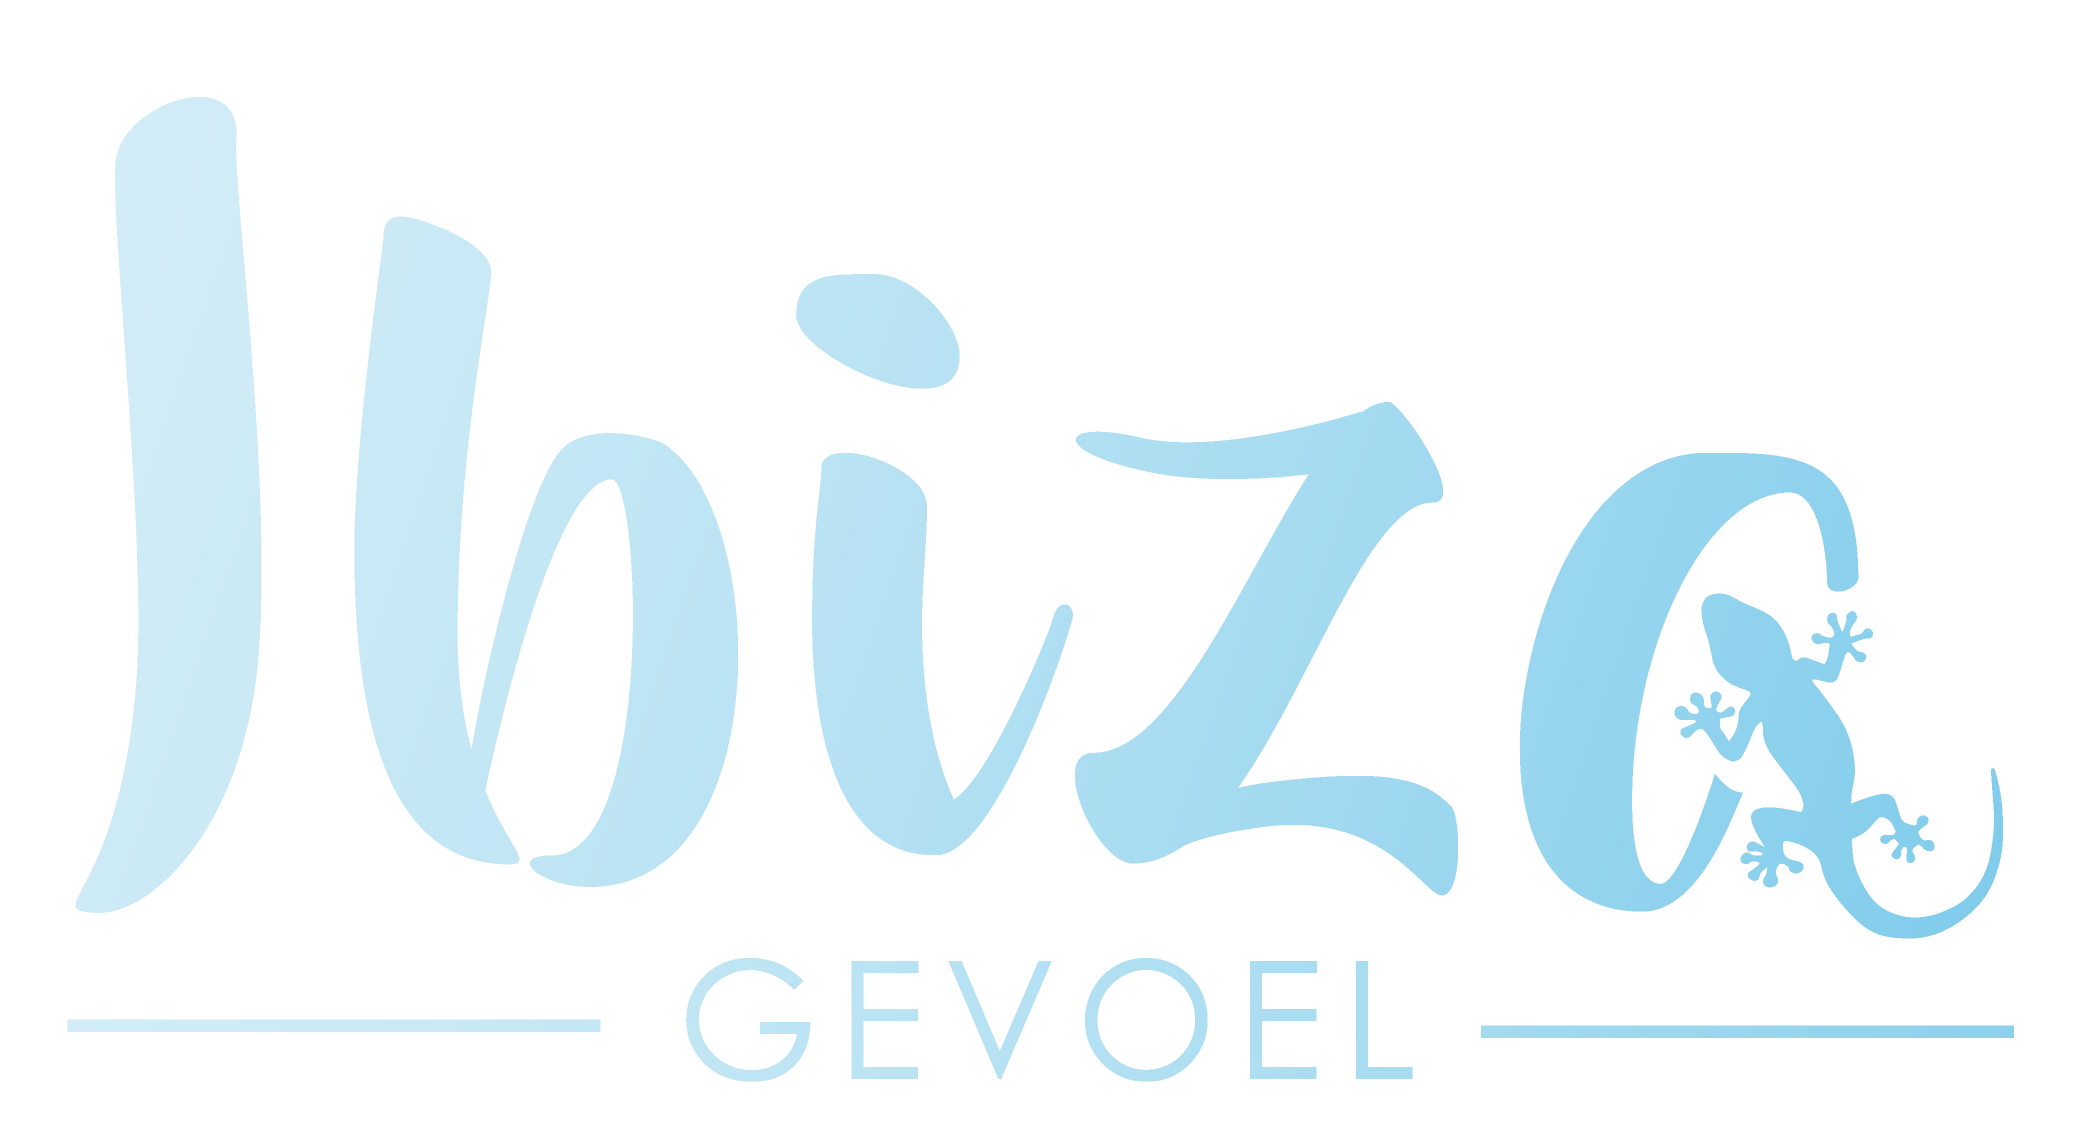 Ibiza Gevoel - Blog en website over Ibiza